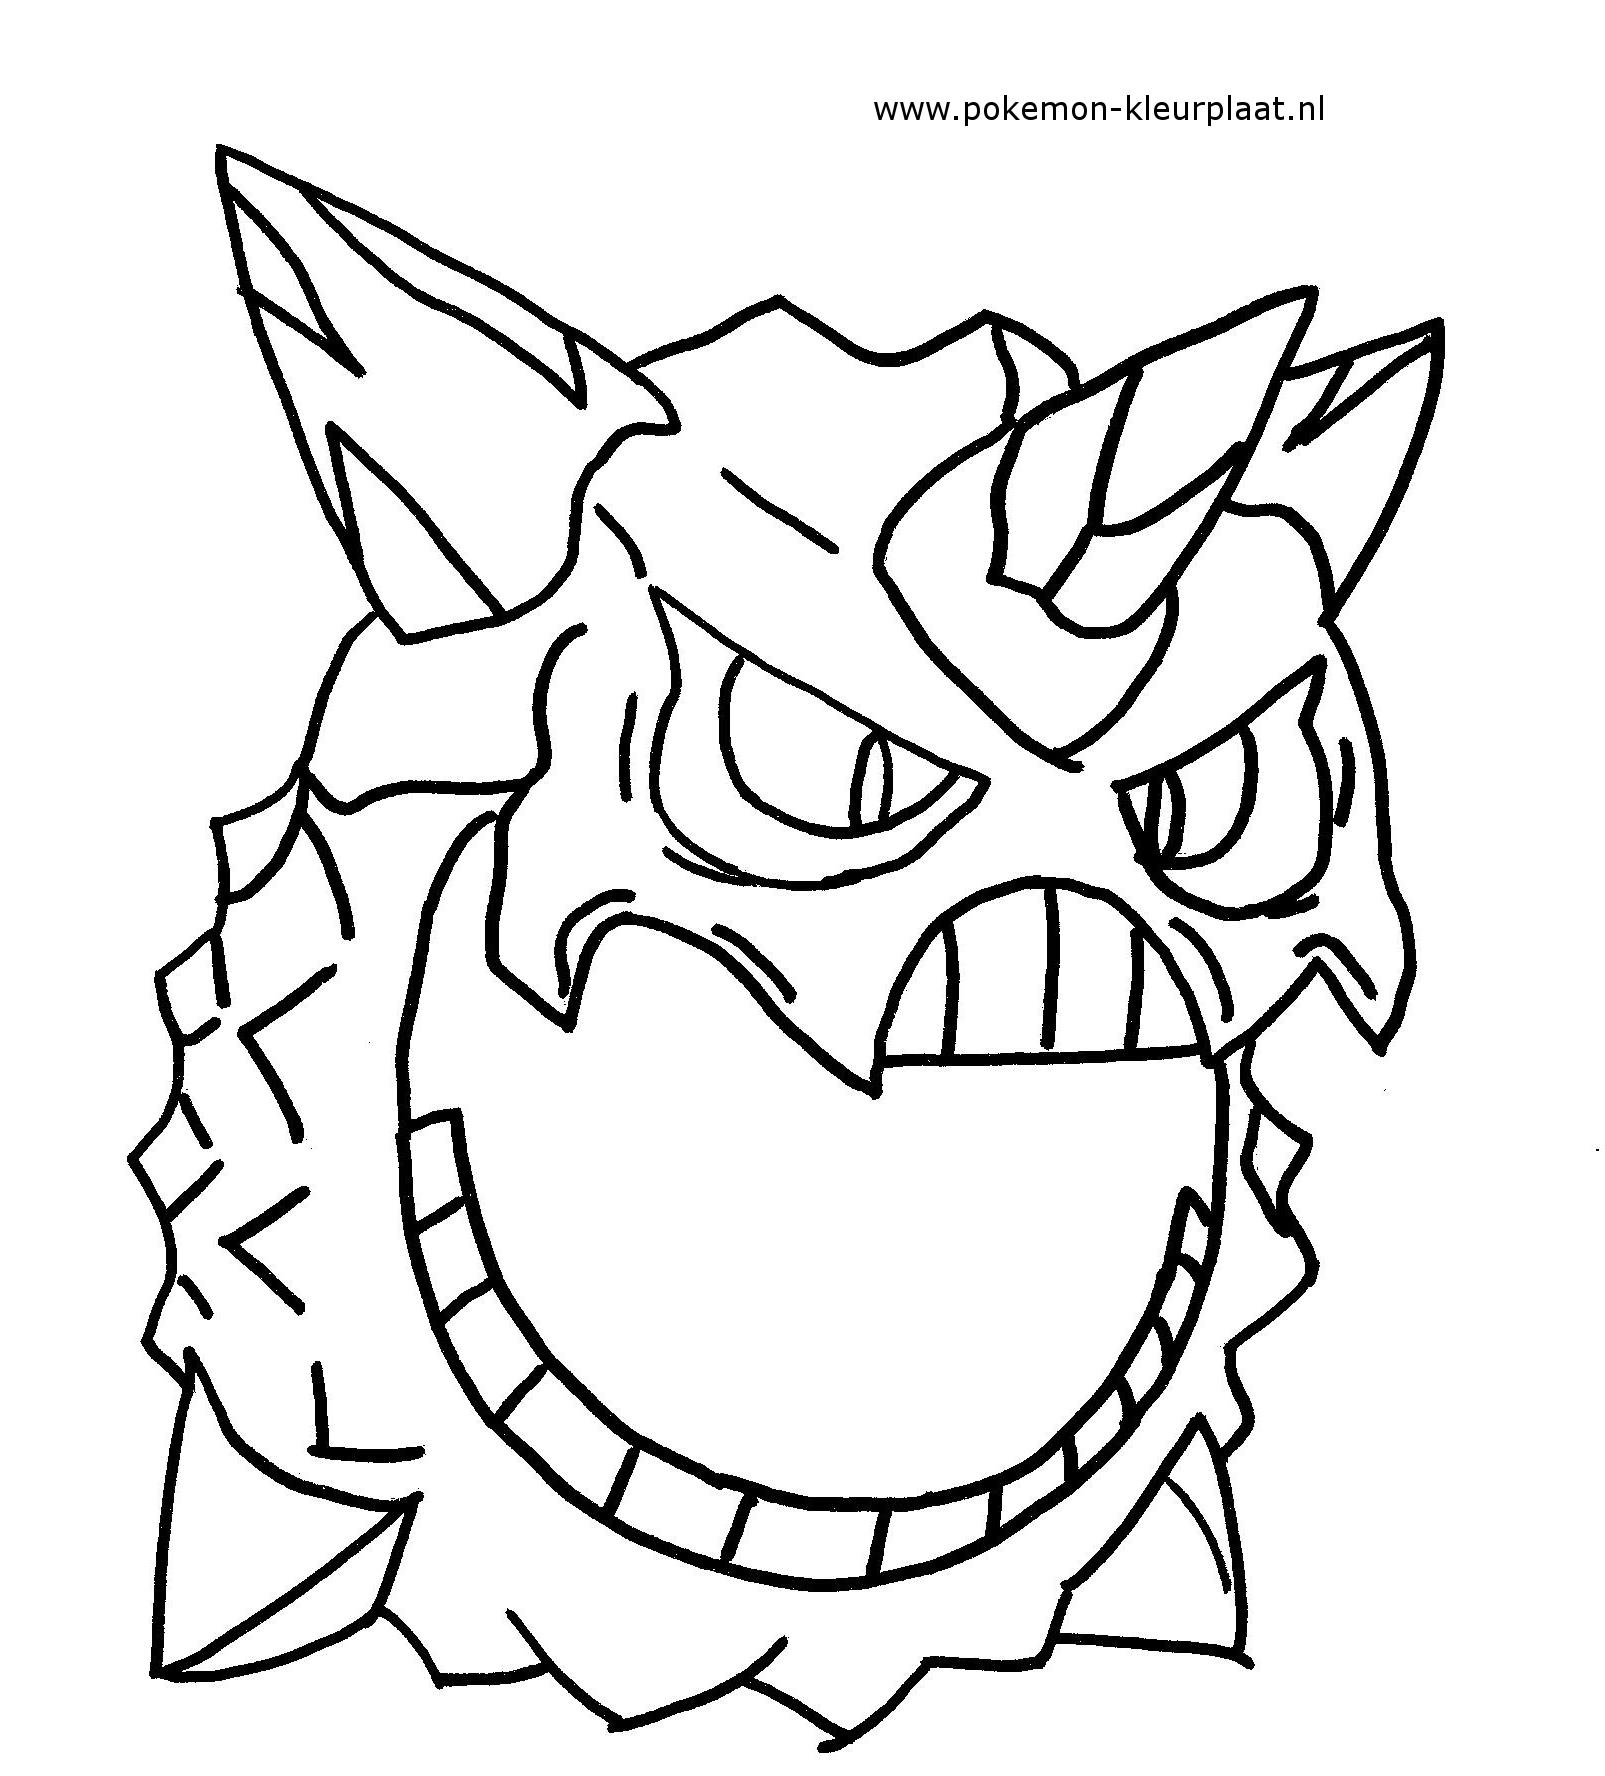 1605x1776 Mega Glalie Primalgroudon Pokemon Coloringpage With Coloring Pages